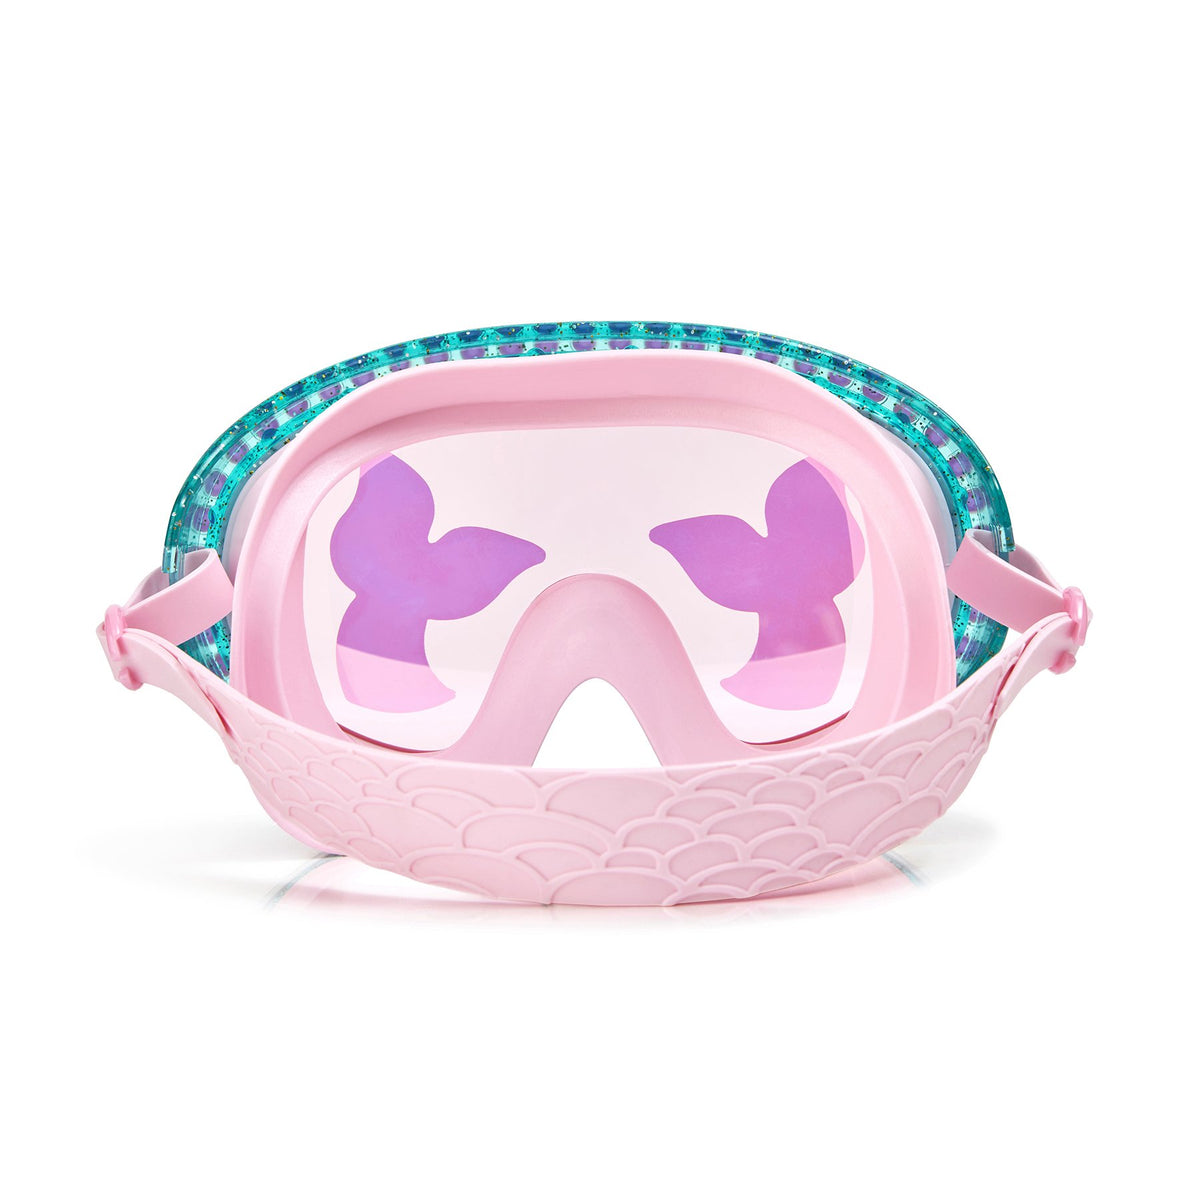 Bling2o Jewel Pink Blue Sea Mask